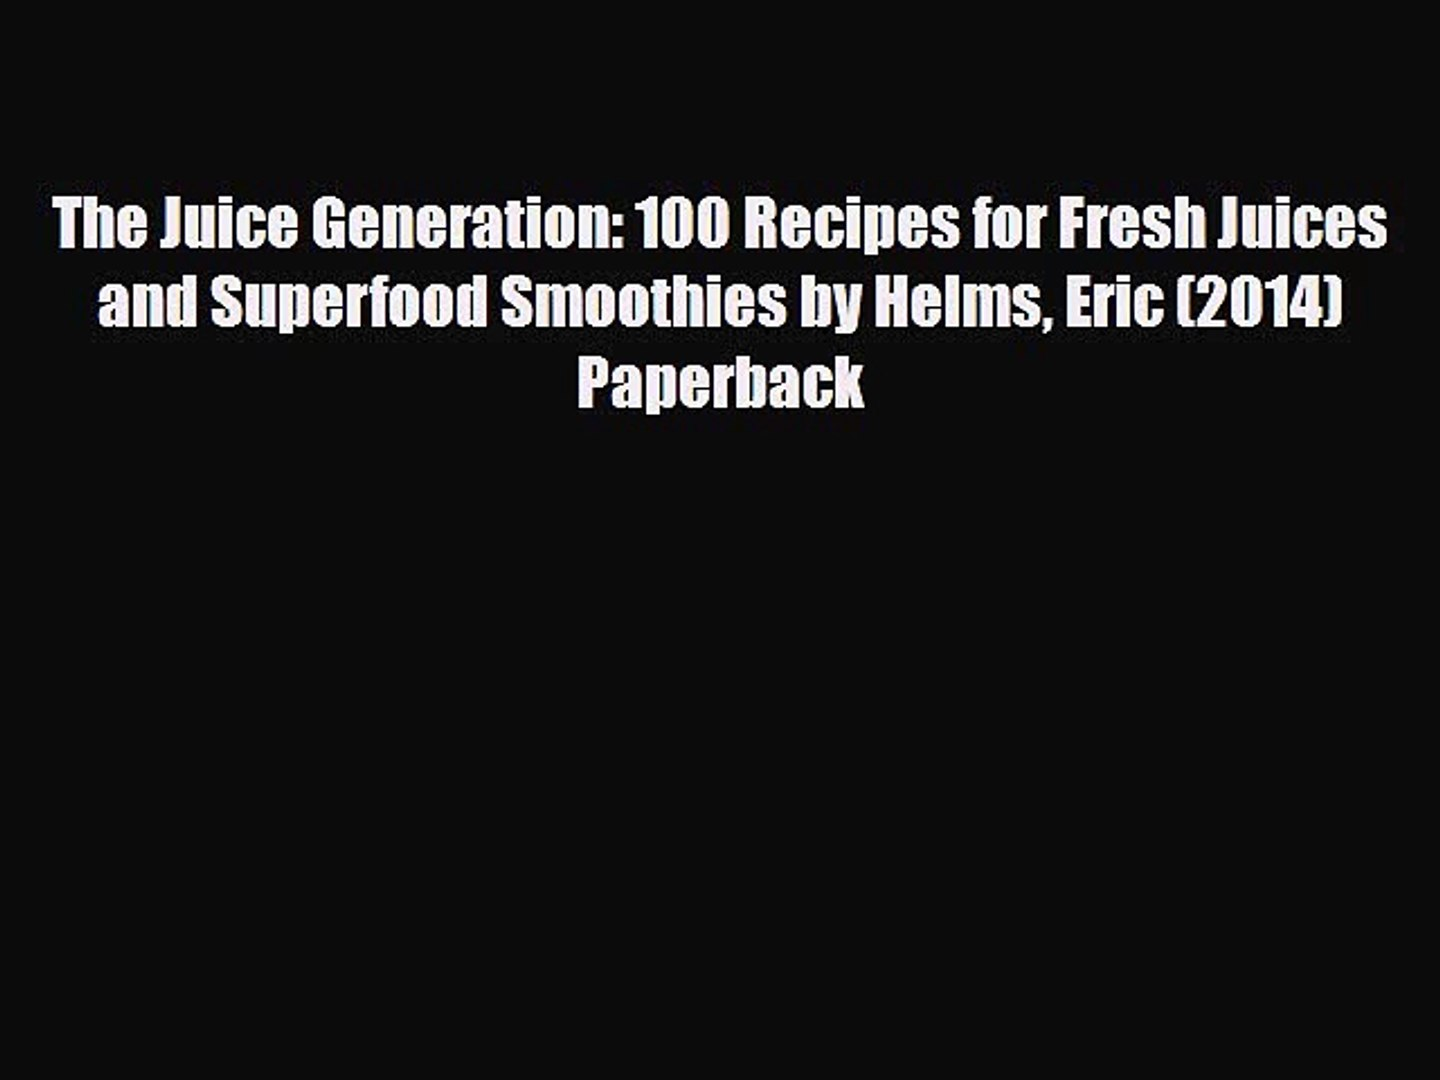 [PDF] The Juice Generation: 100 Recipes for Fresh Juices and Superfood Smoothies by Helms Eric